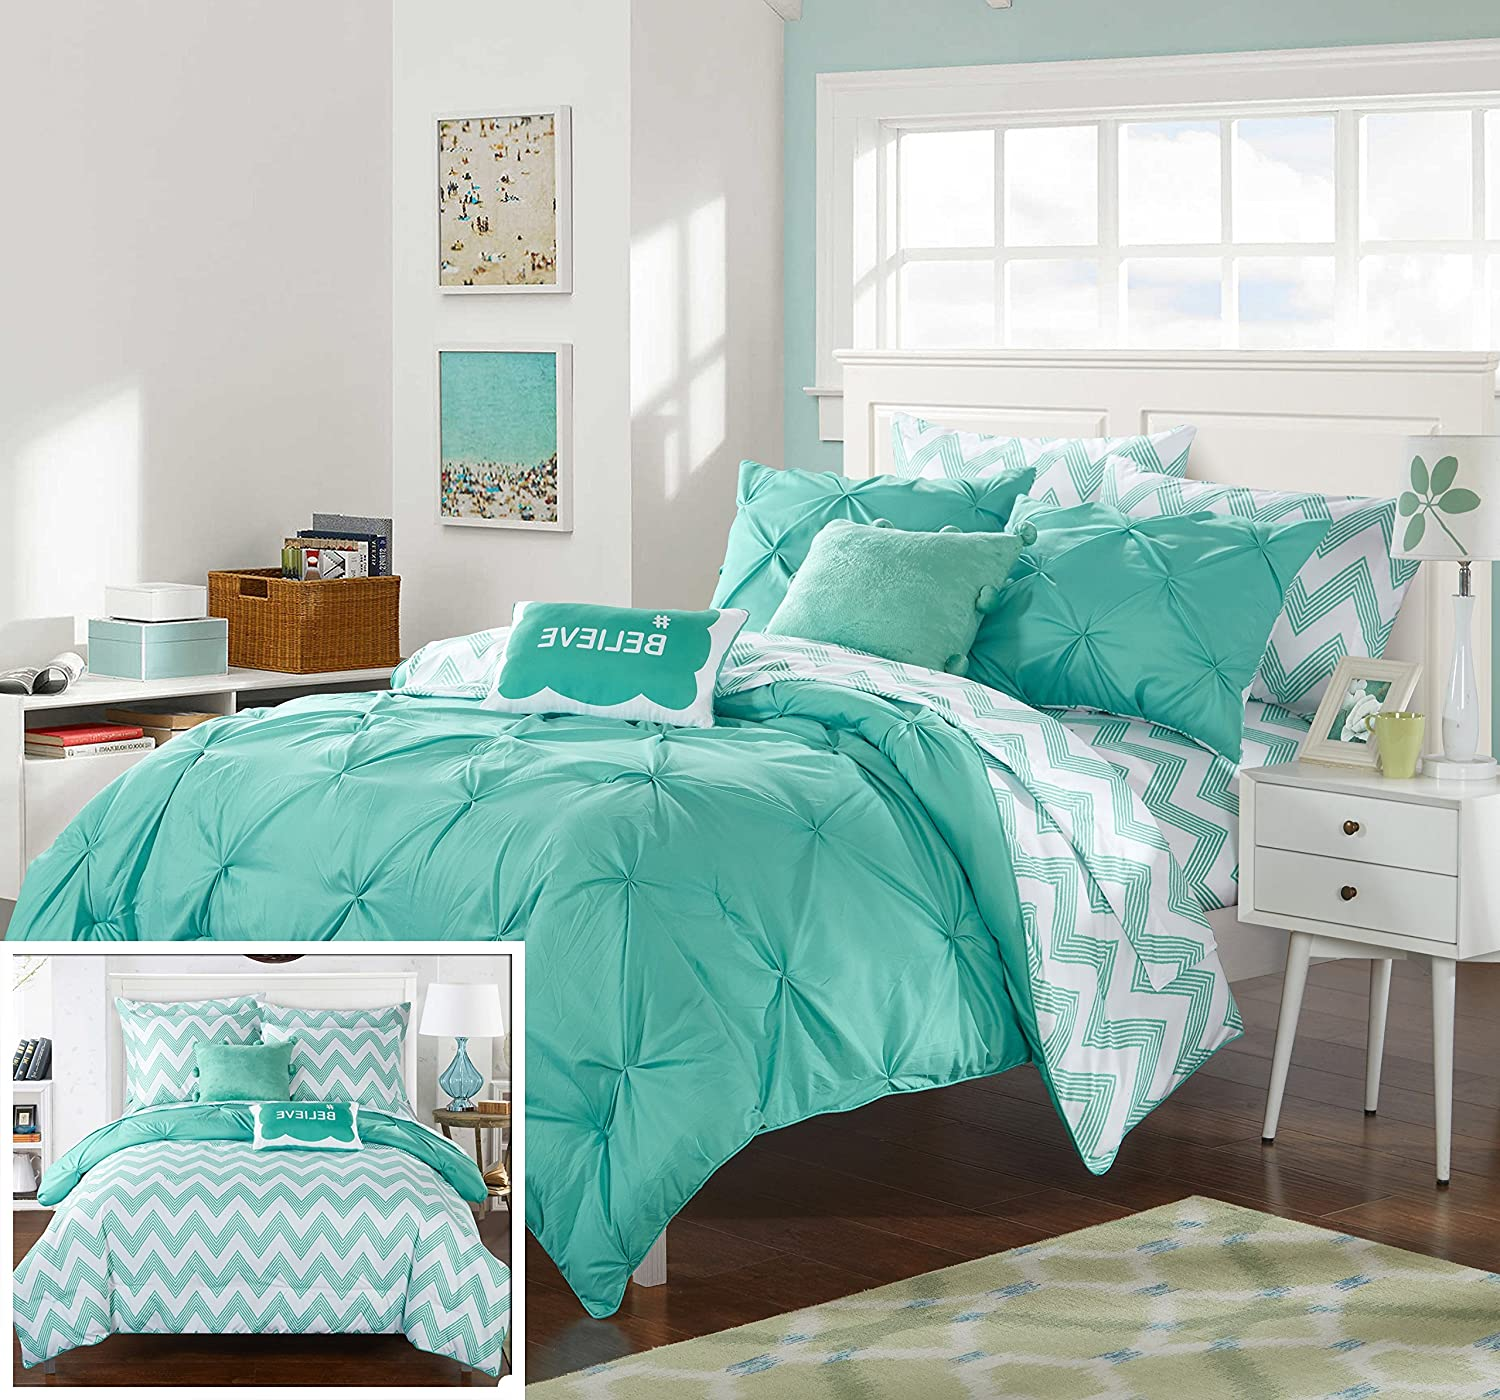 og twin episode turtles bedroom alluring teal girls mutant set news urban coordinated bag in mint season comforter javi wolf teenage green cast bedding stripe ninja mainstays awesome teen mom pink purple